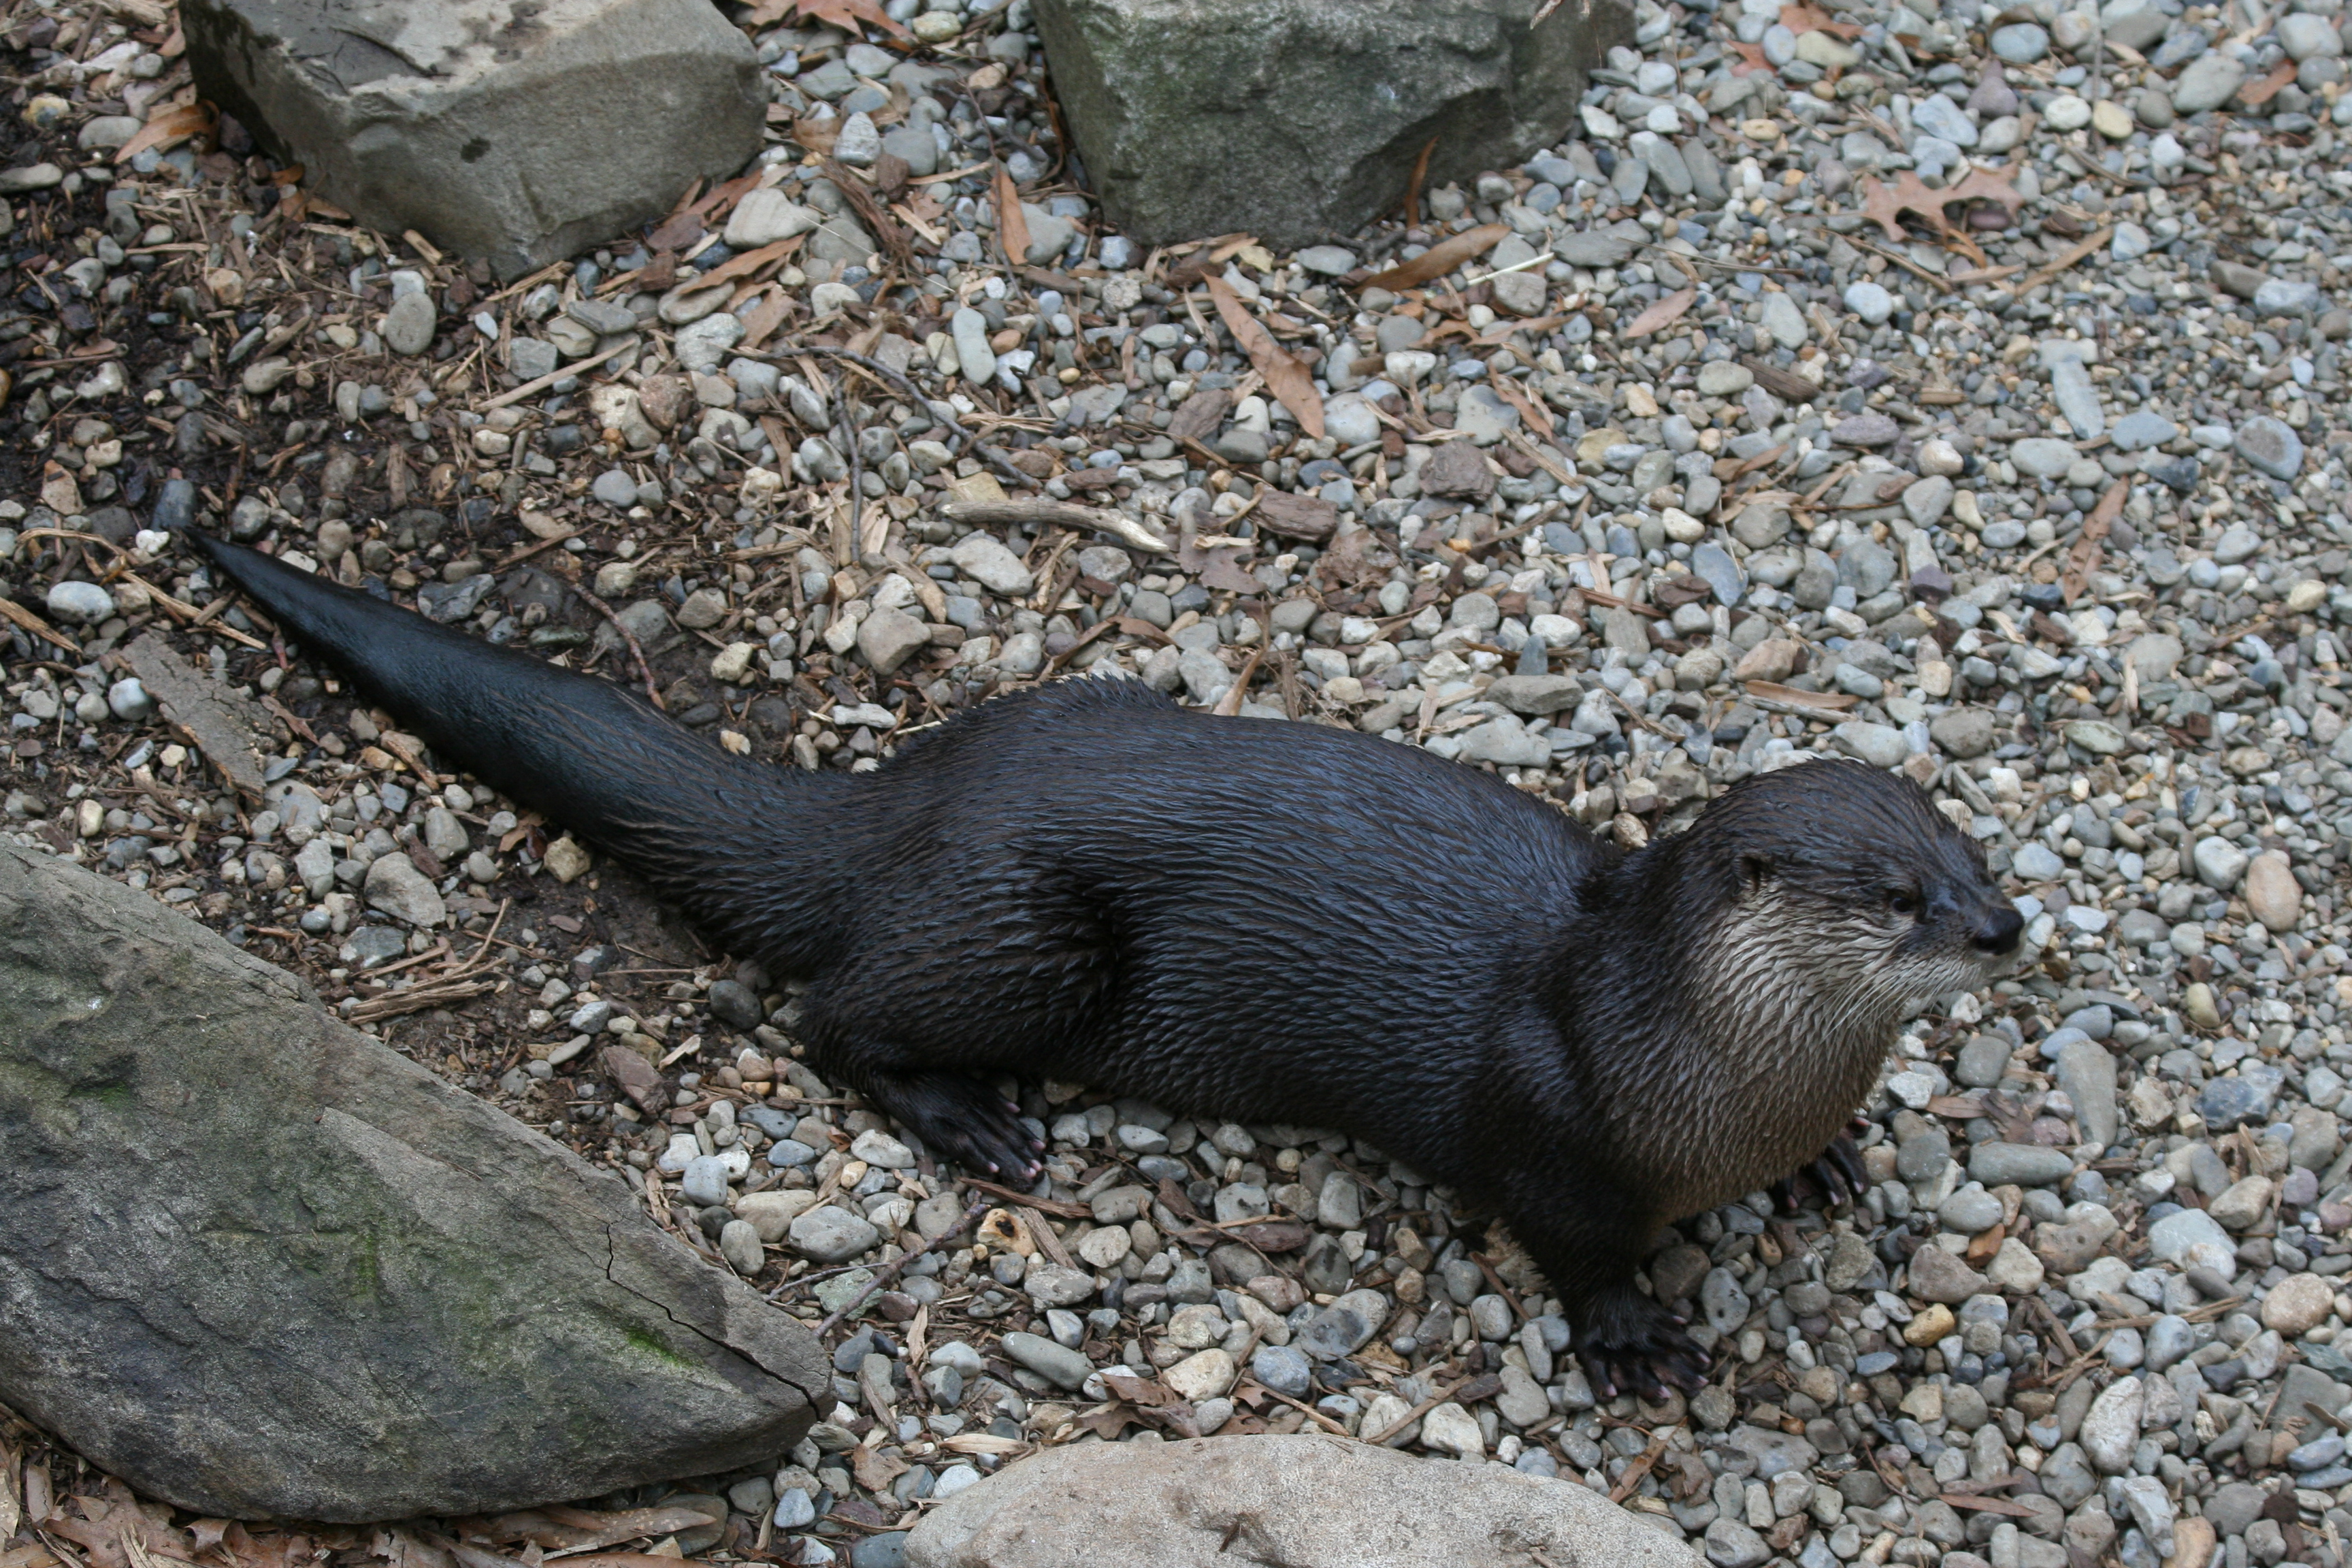 FileRiver Otter at the National Zoojpg   Wikimedia Commons 3456x2304